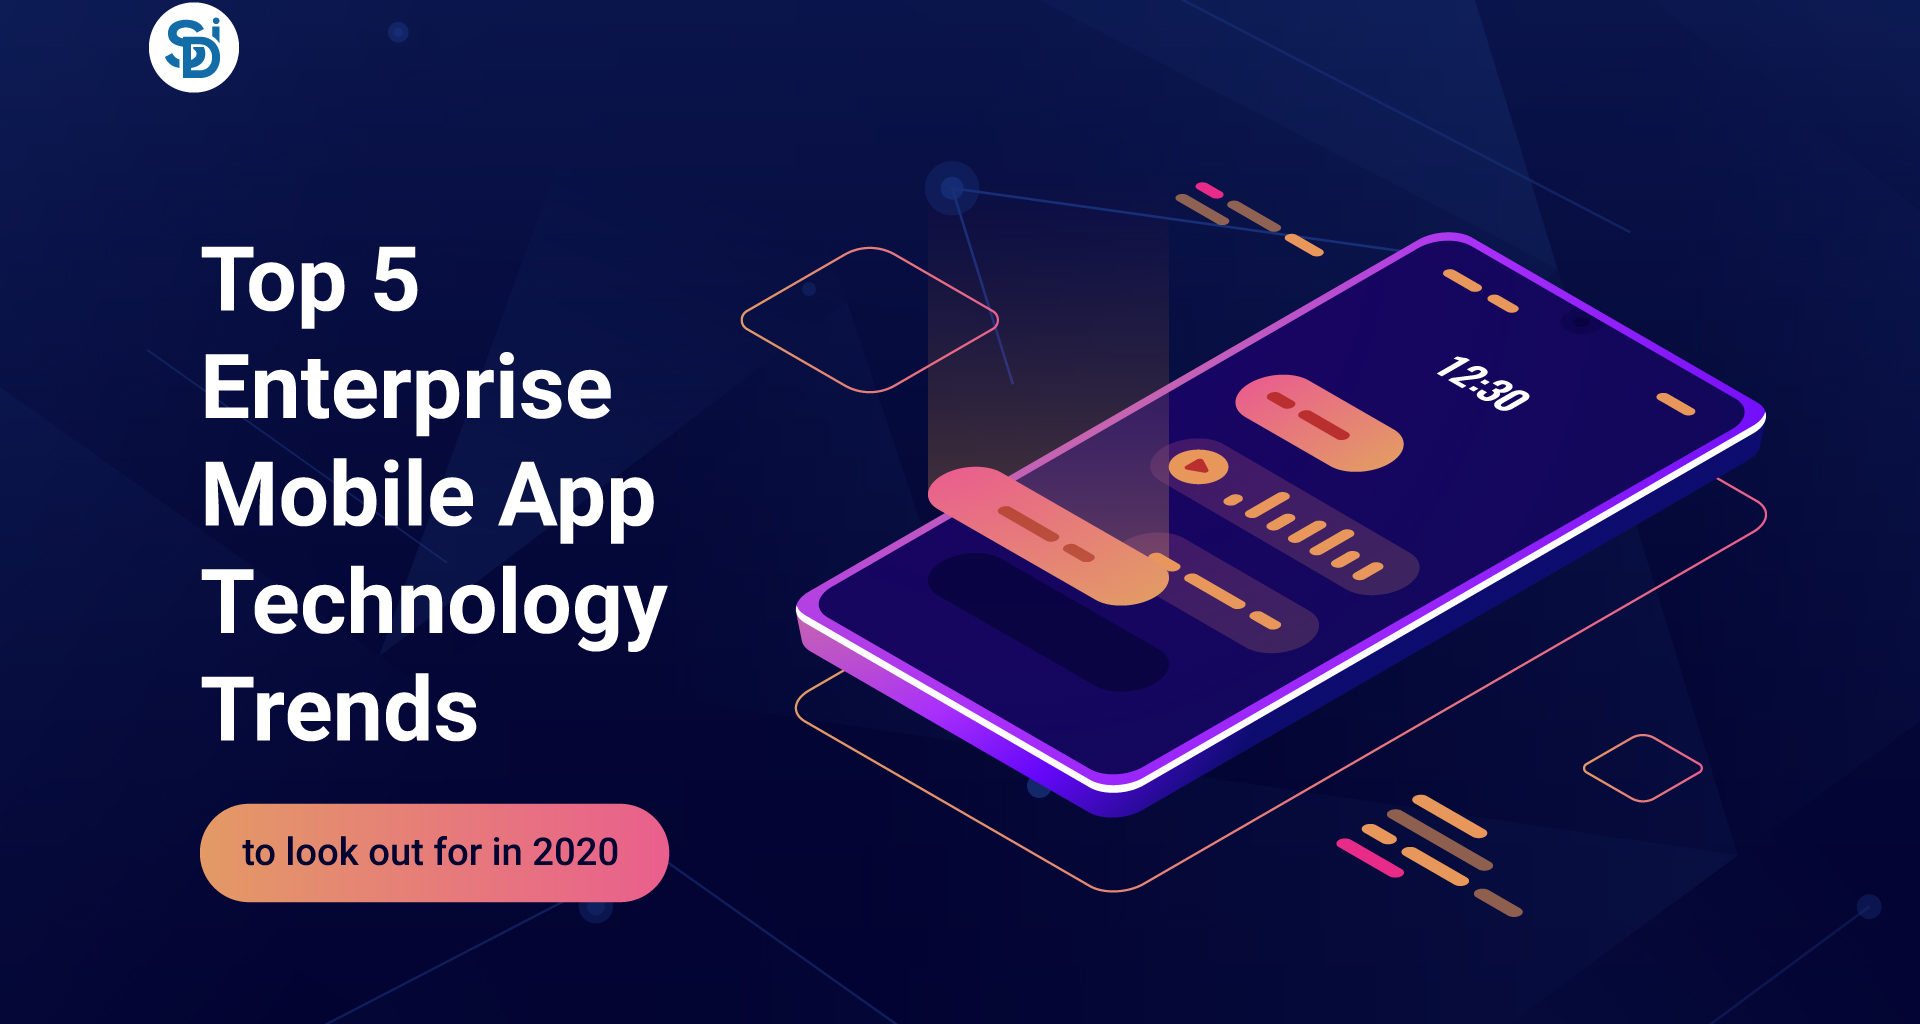 Top 5 Enterprise Mobile App Trends to look out for in 2020